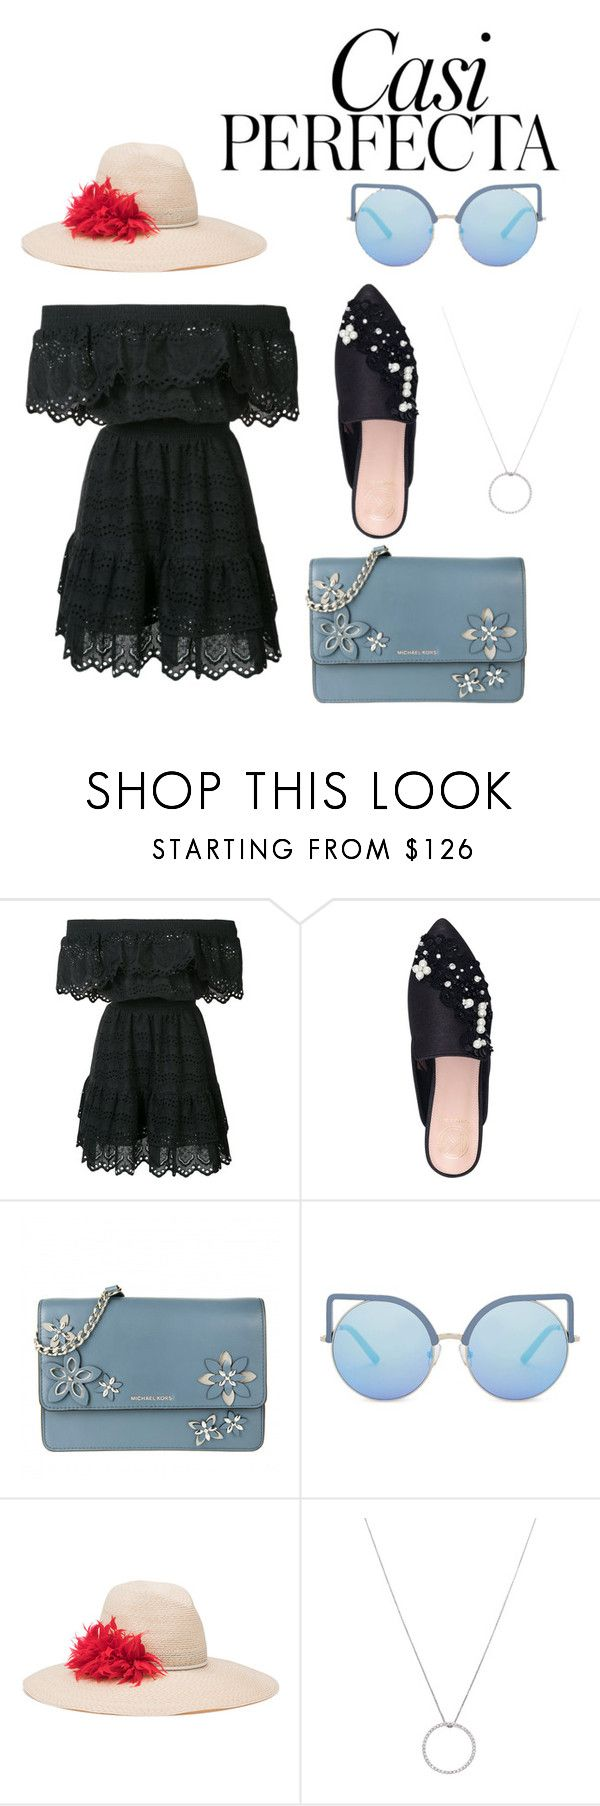 """Untitled #32"" by nerdygets on Polyvore featuring LoveShackFancy, KG Kurt Geiger, MICHAEL Michael Kors, Matthew Williamson, Eugenia Kim, Roberto Coin and Whiteley"